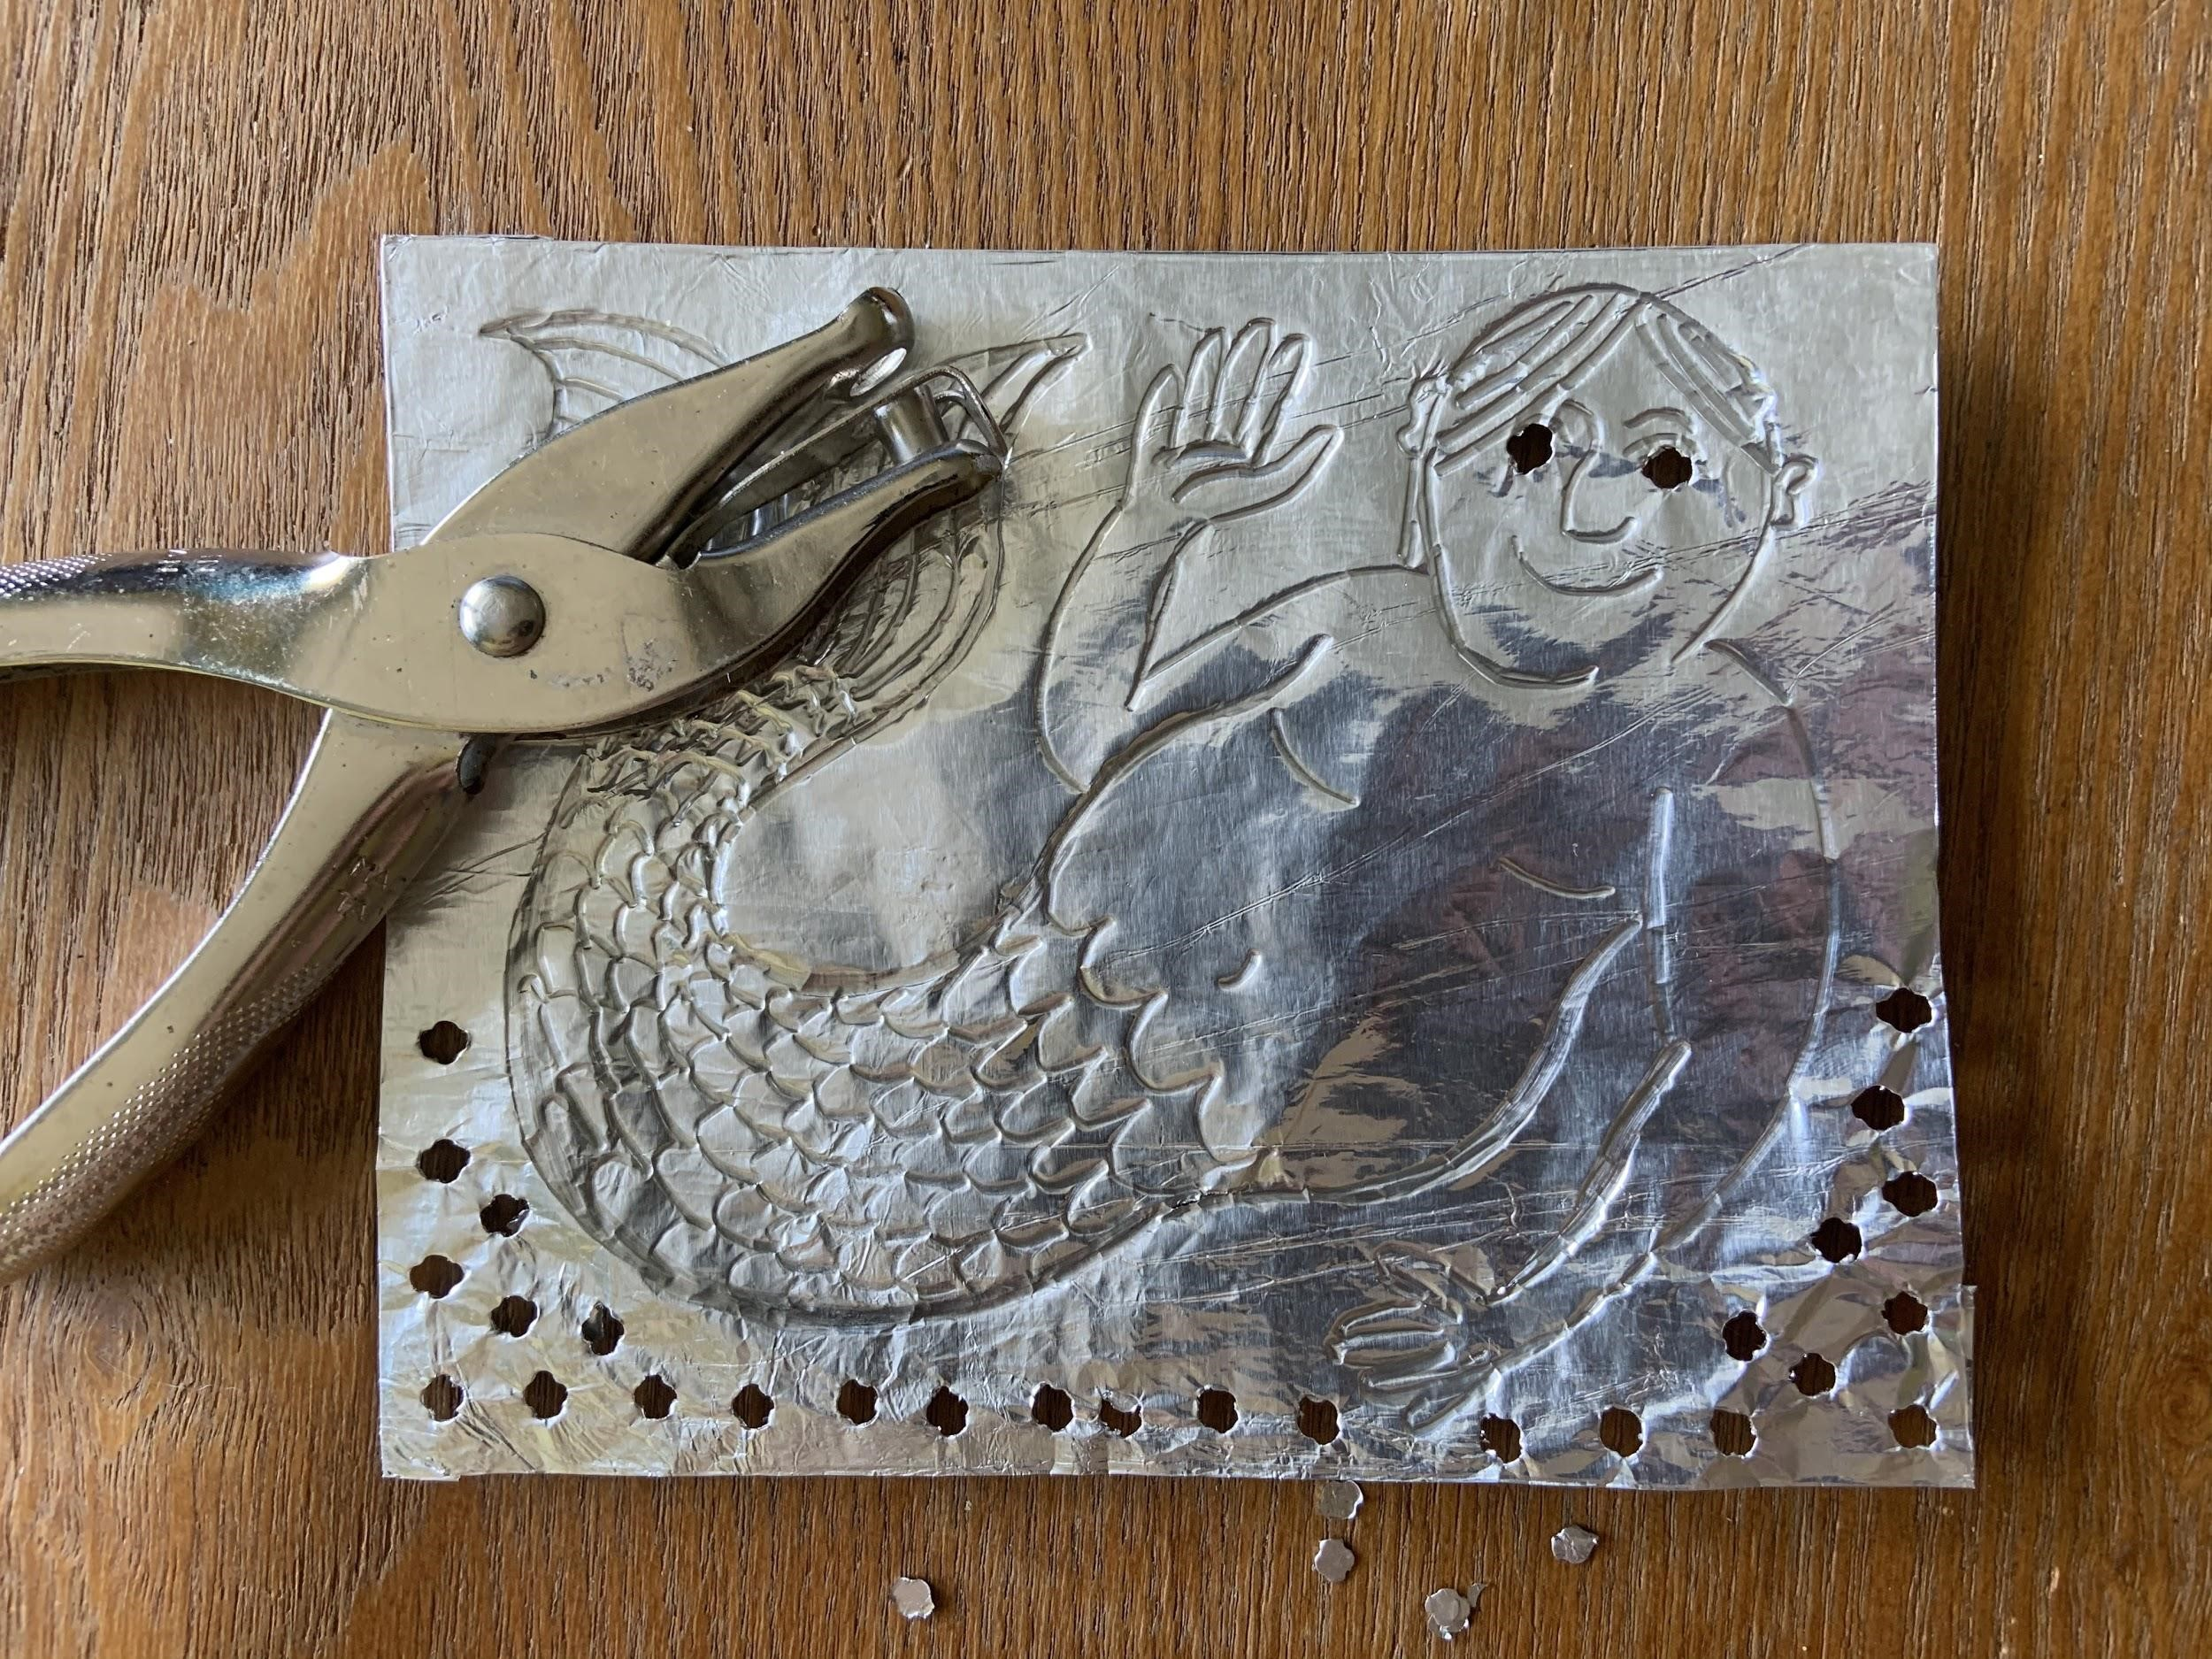 Mermaid embossed in a piece of foil with holes punched along the outside